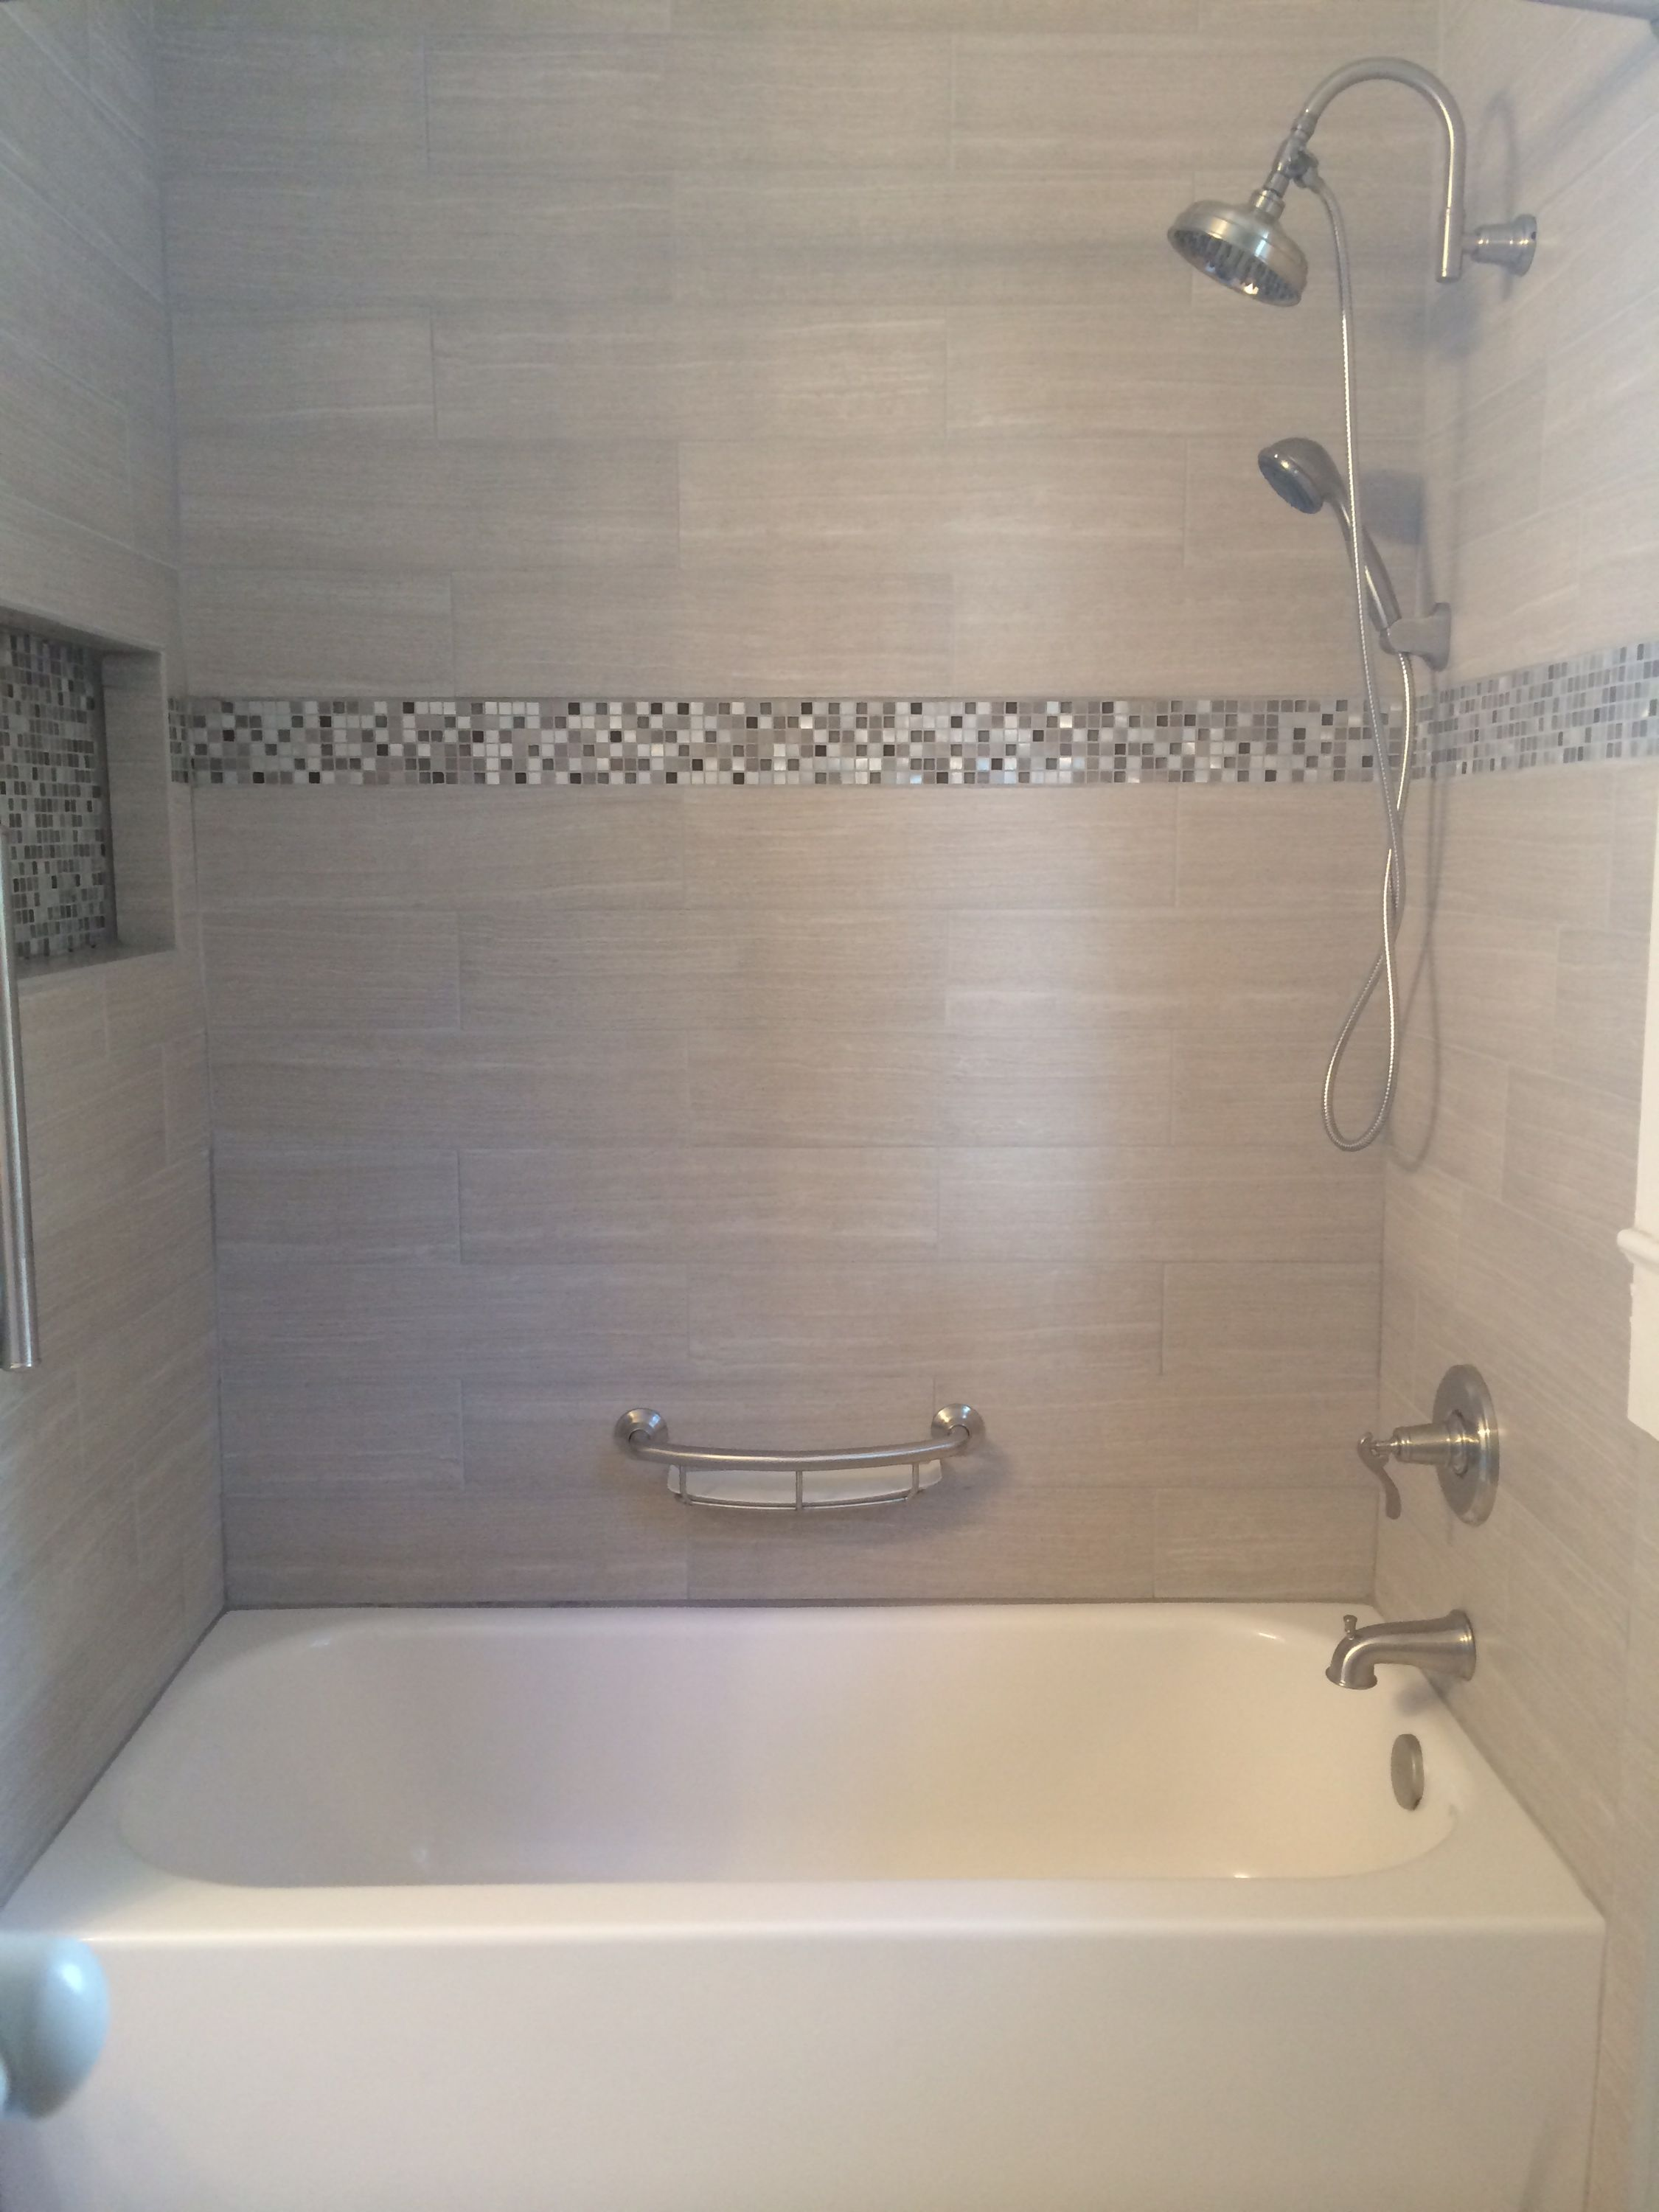 cost of tile for bathroom floor%0A Bathroom tiling